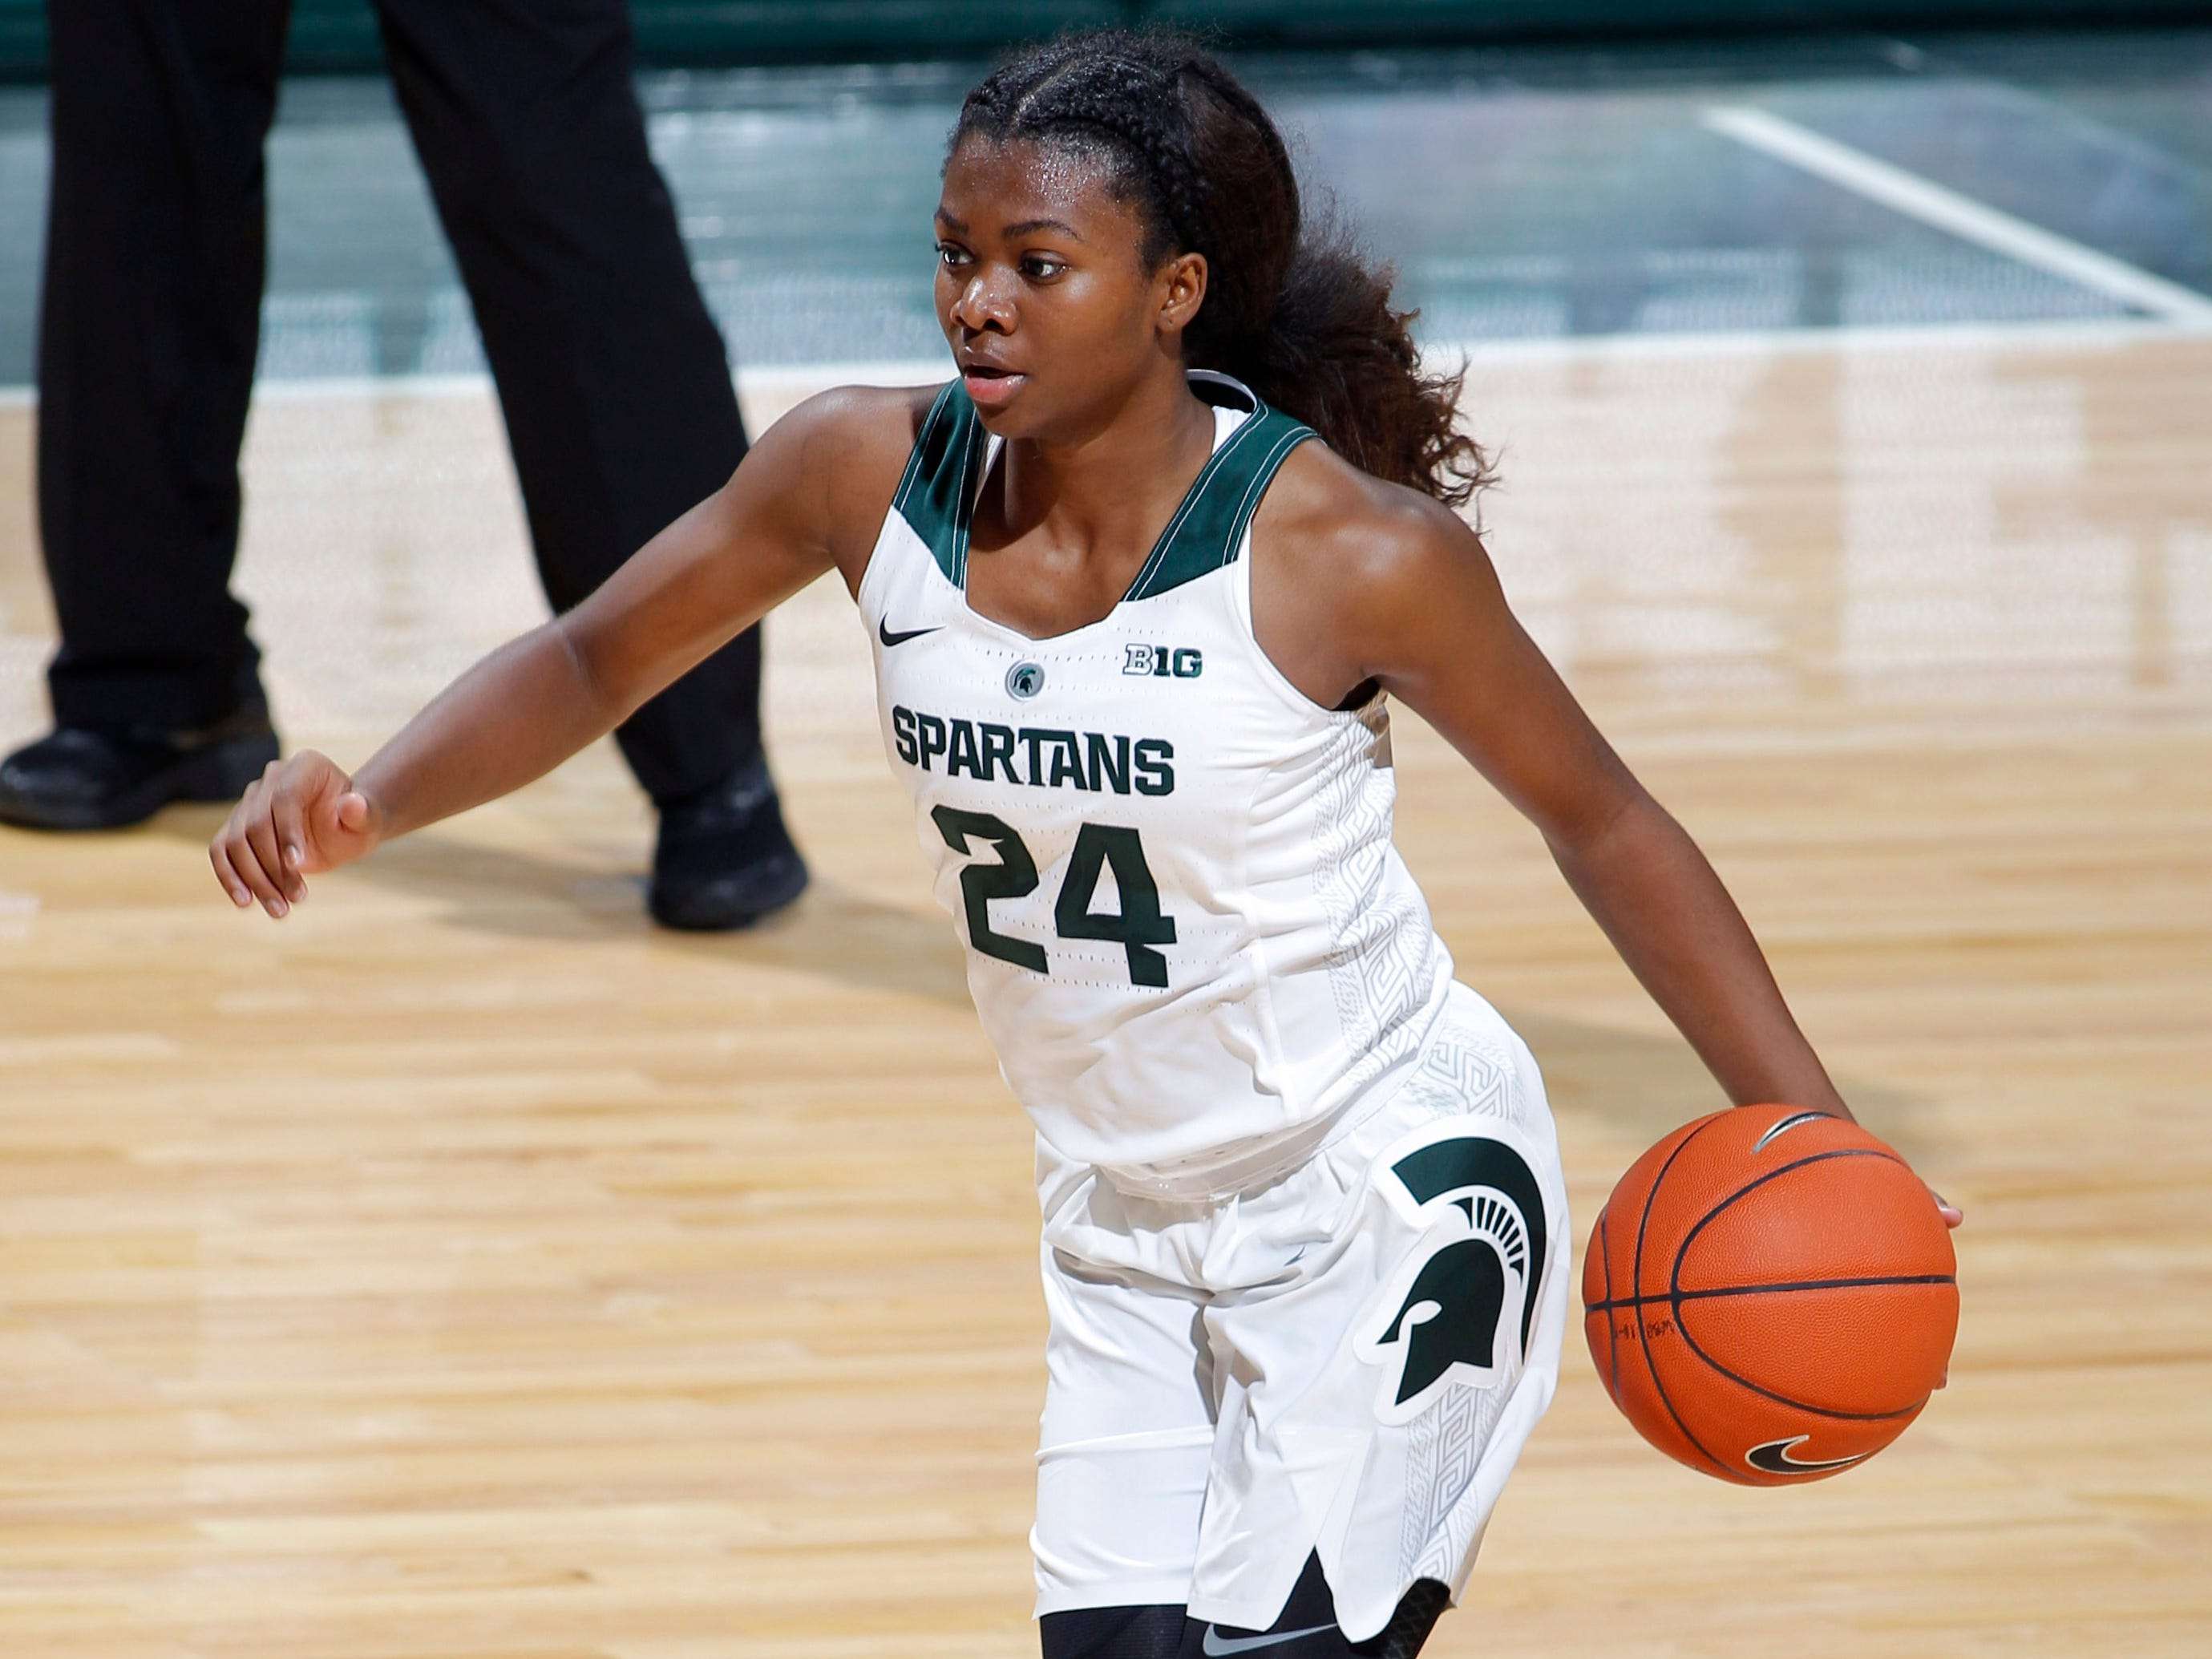 Michigan State's Nia Clouden drives against Hillsdale, Thursday, Nov. 1, 2018, in East Lansing, Mich.